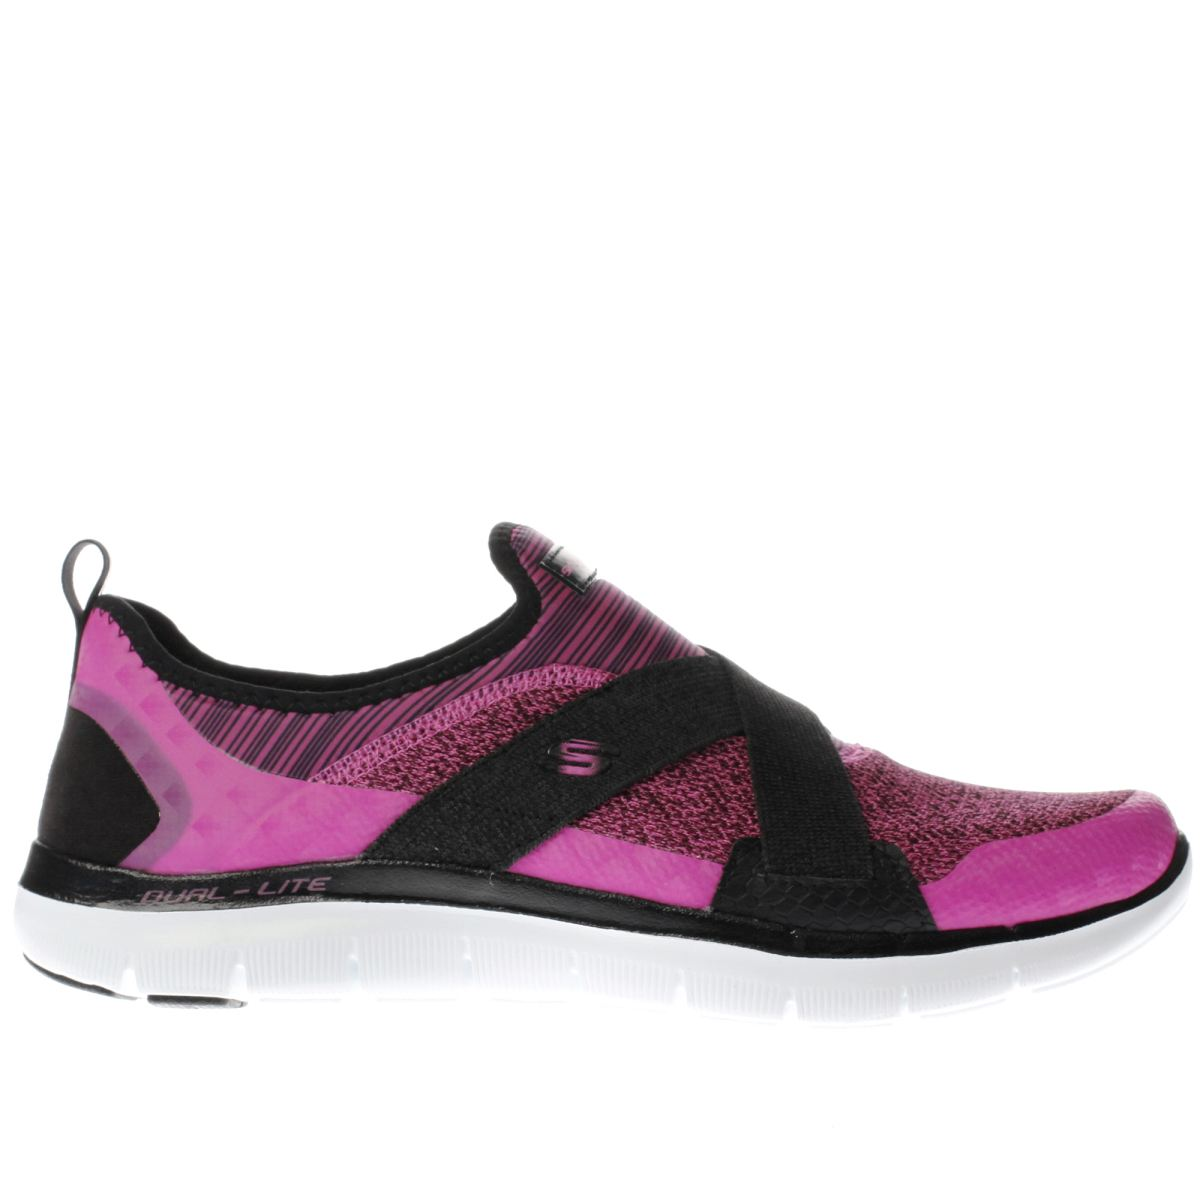 skechers pink & black flex appeal 2.0 new image trainers